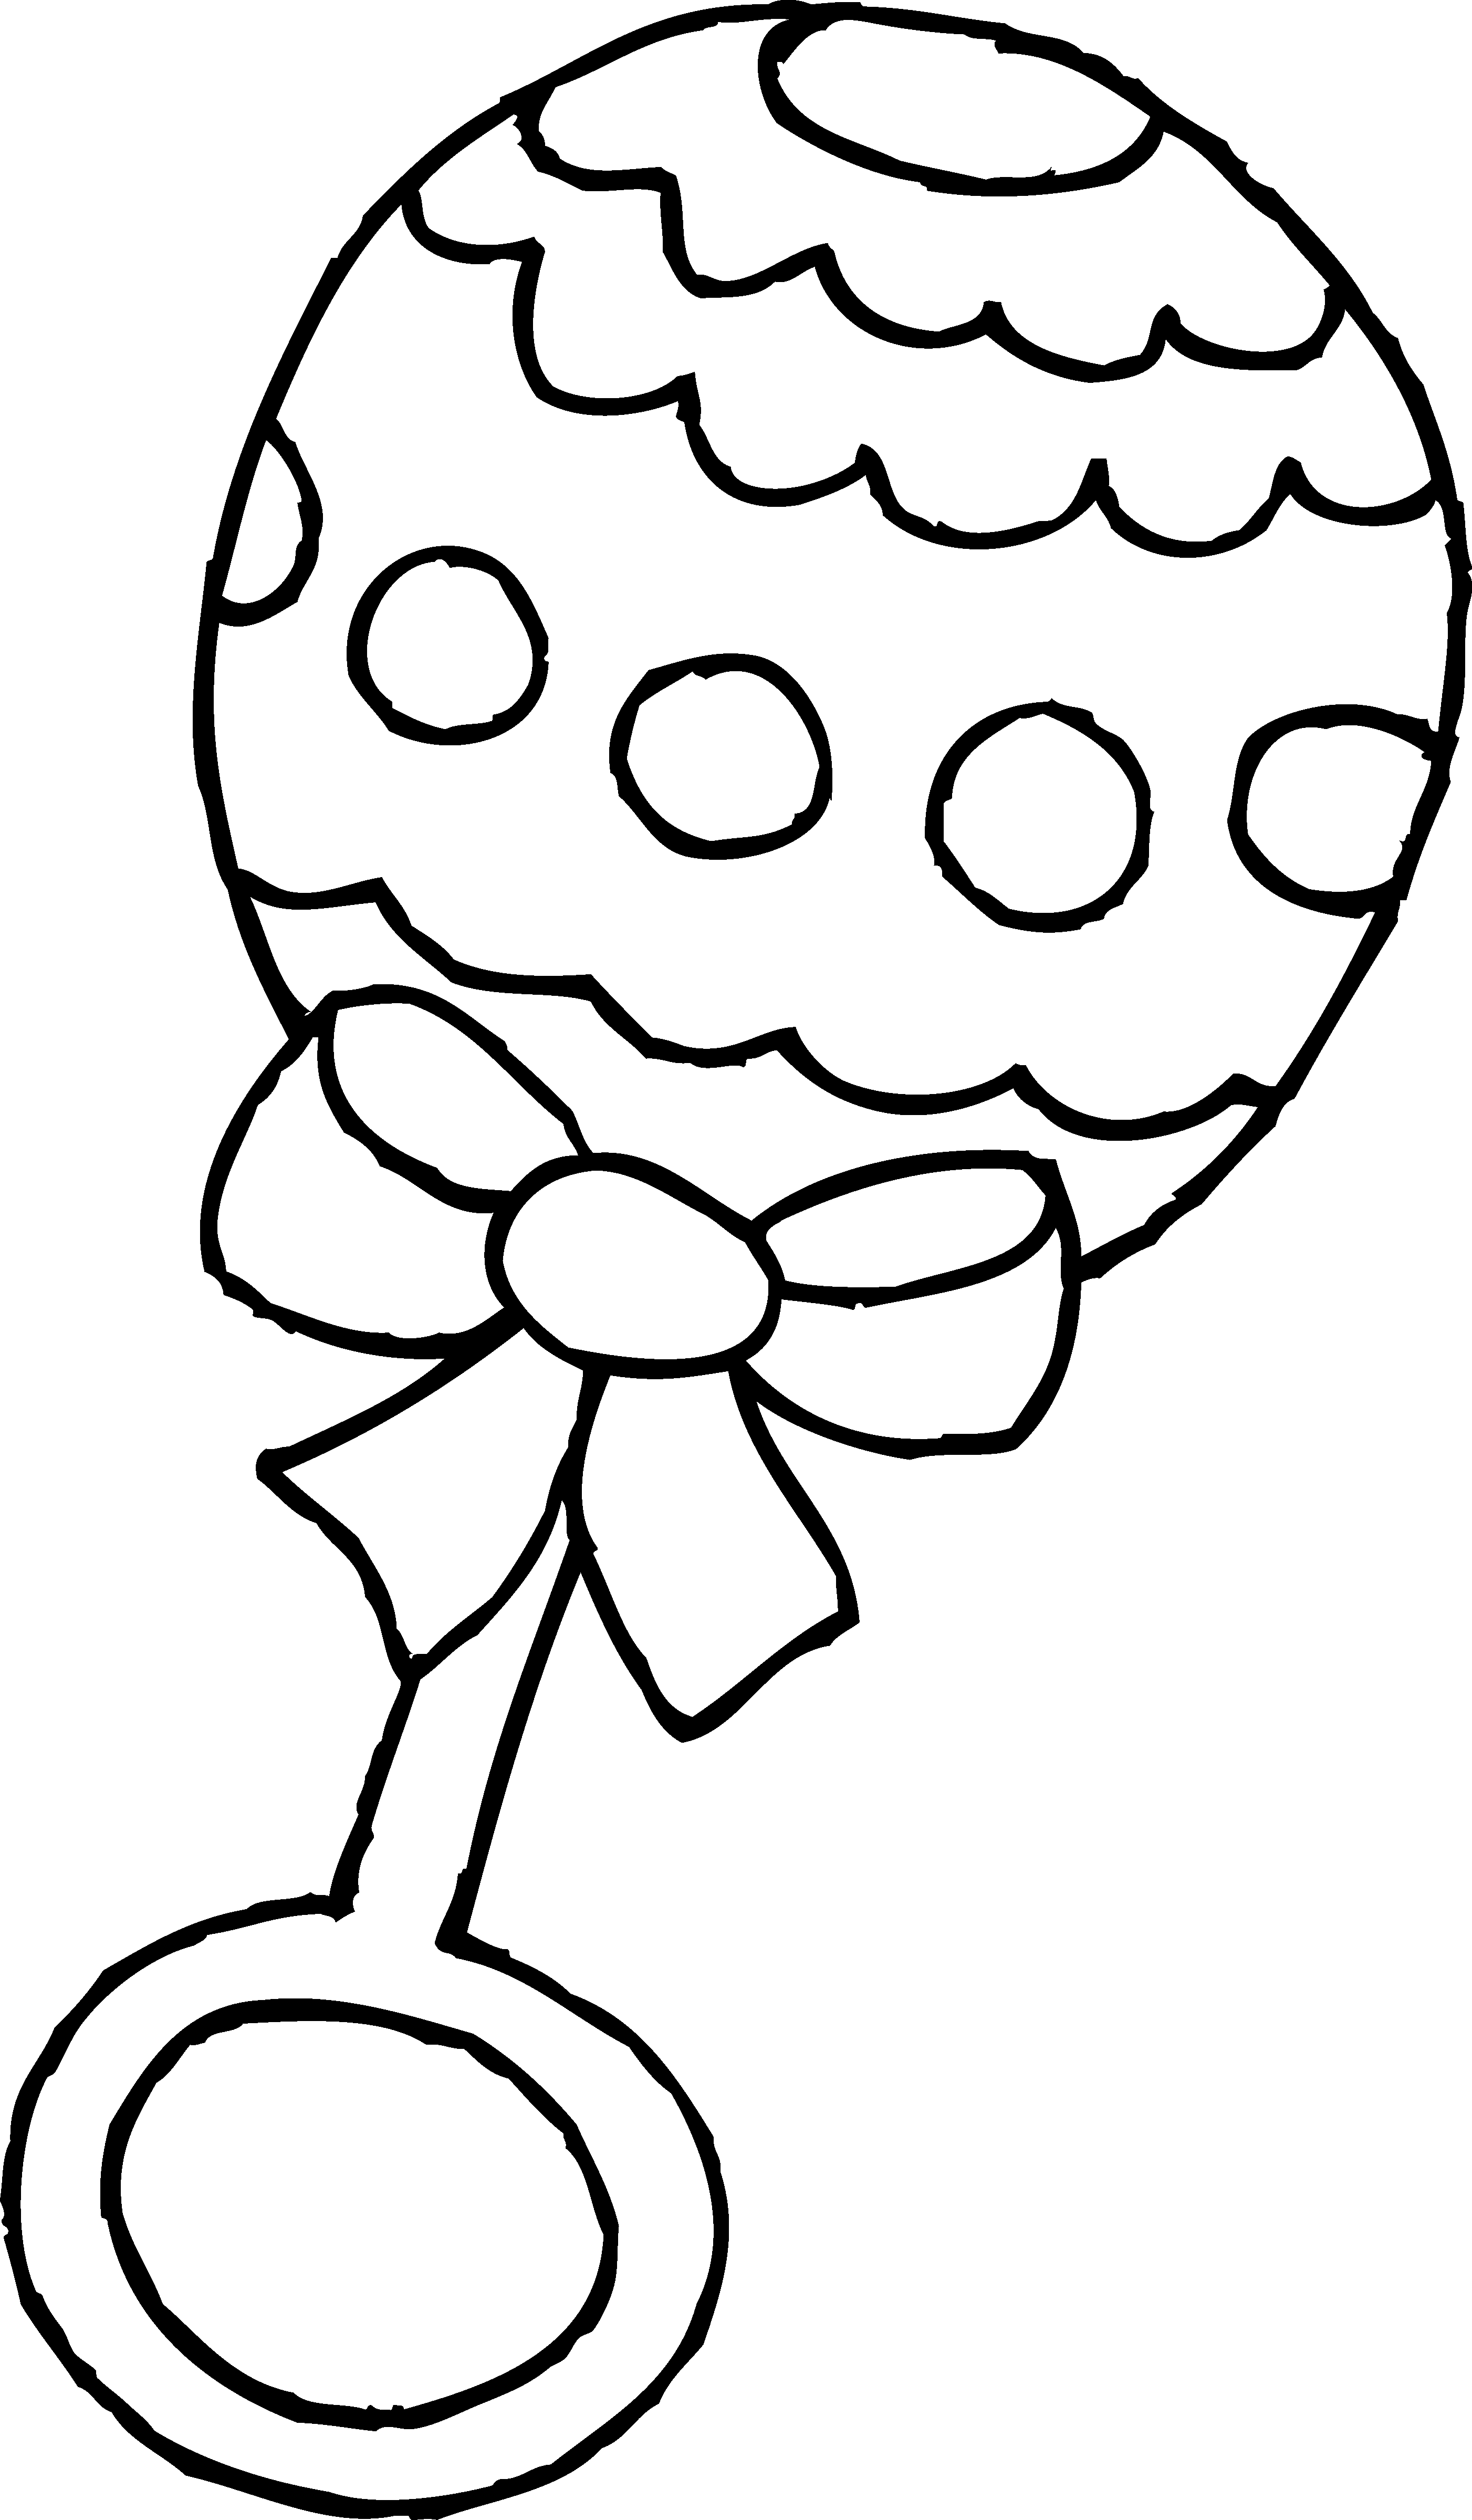 Baby Rattle Clip Art Black and White.